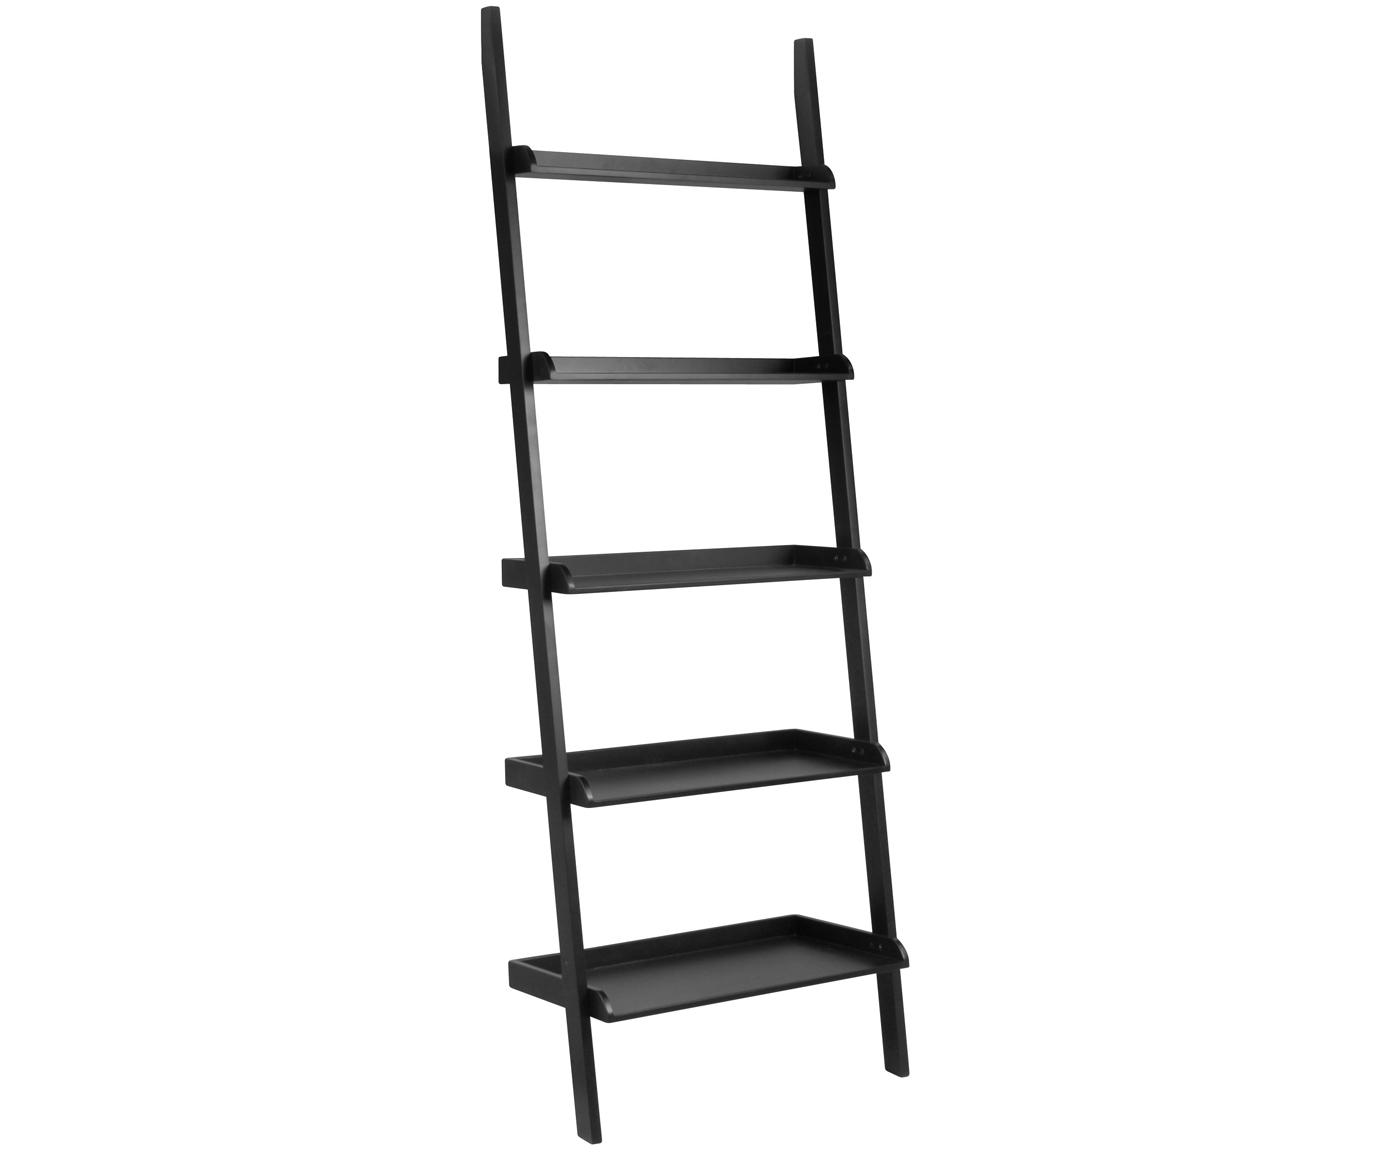 Ladder wandrek Wally in zwart, MDF, Zwart, 67 x 189 cm